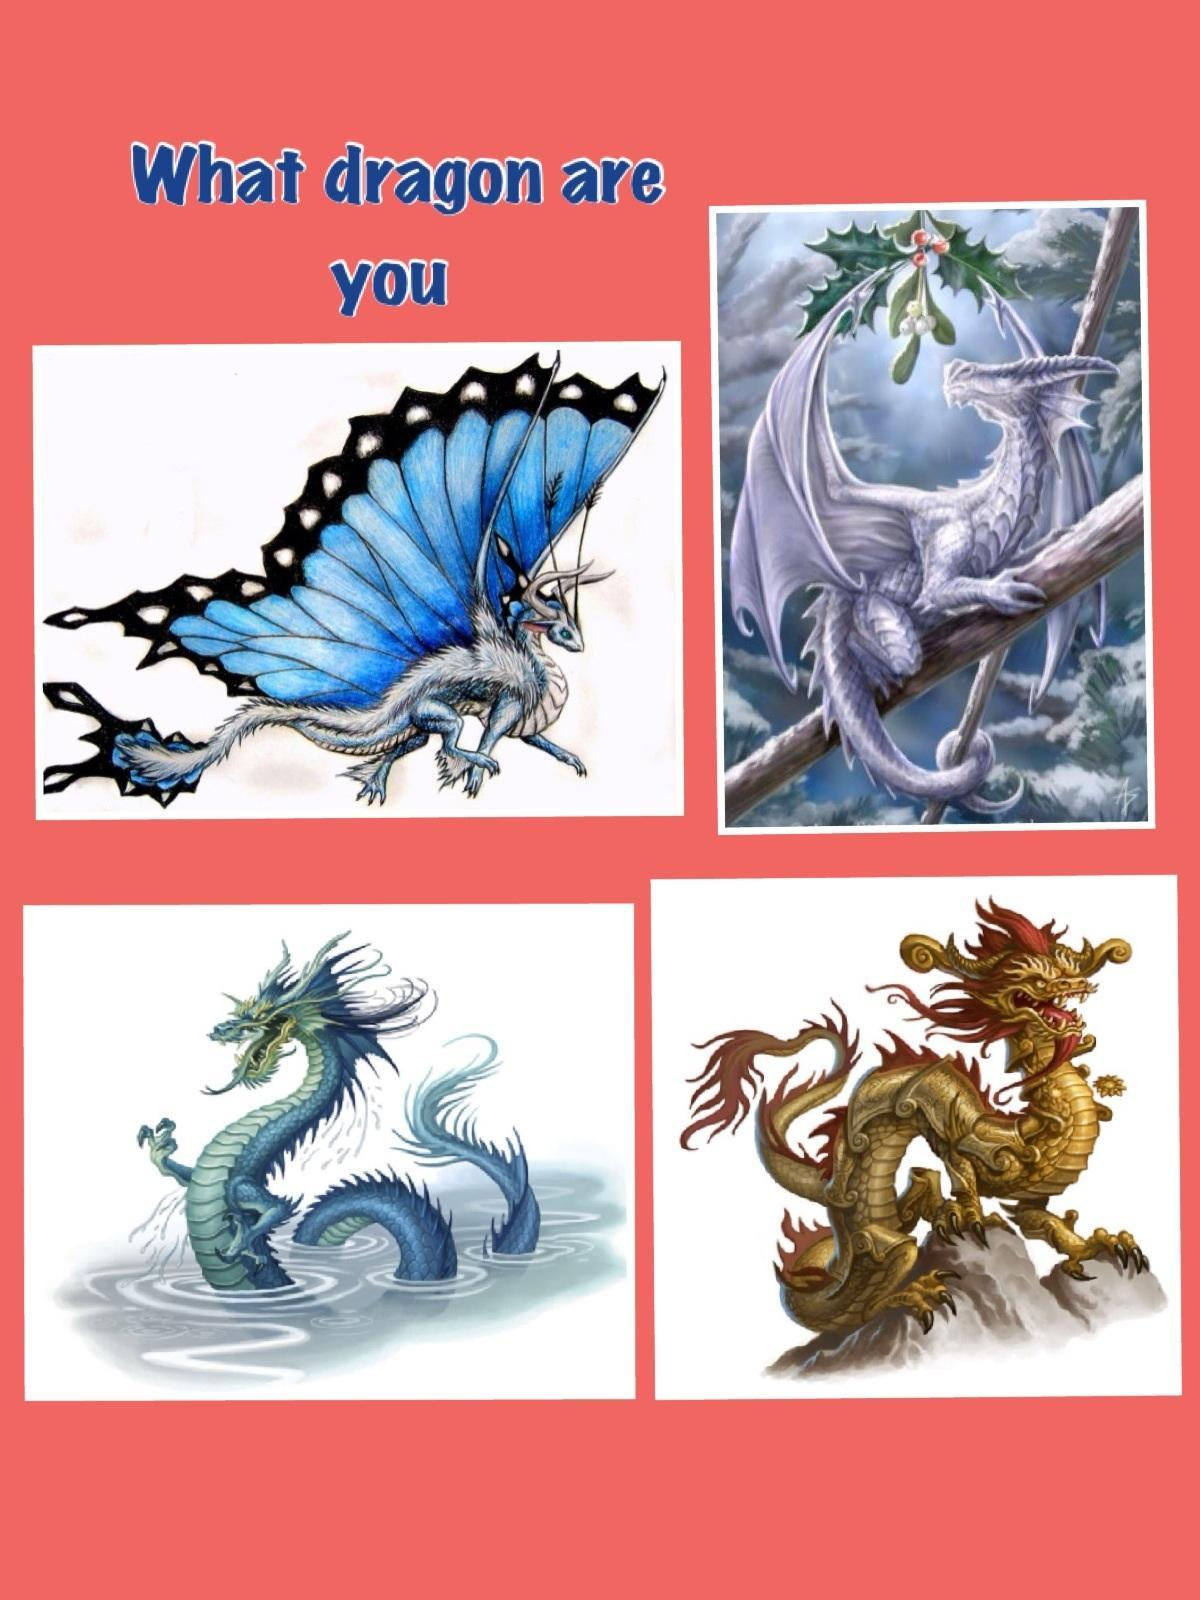 What dragon are you? (1)